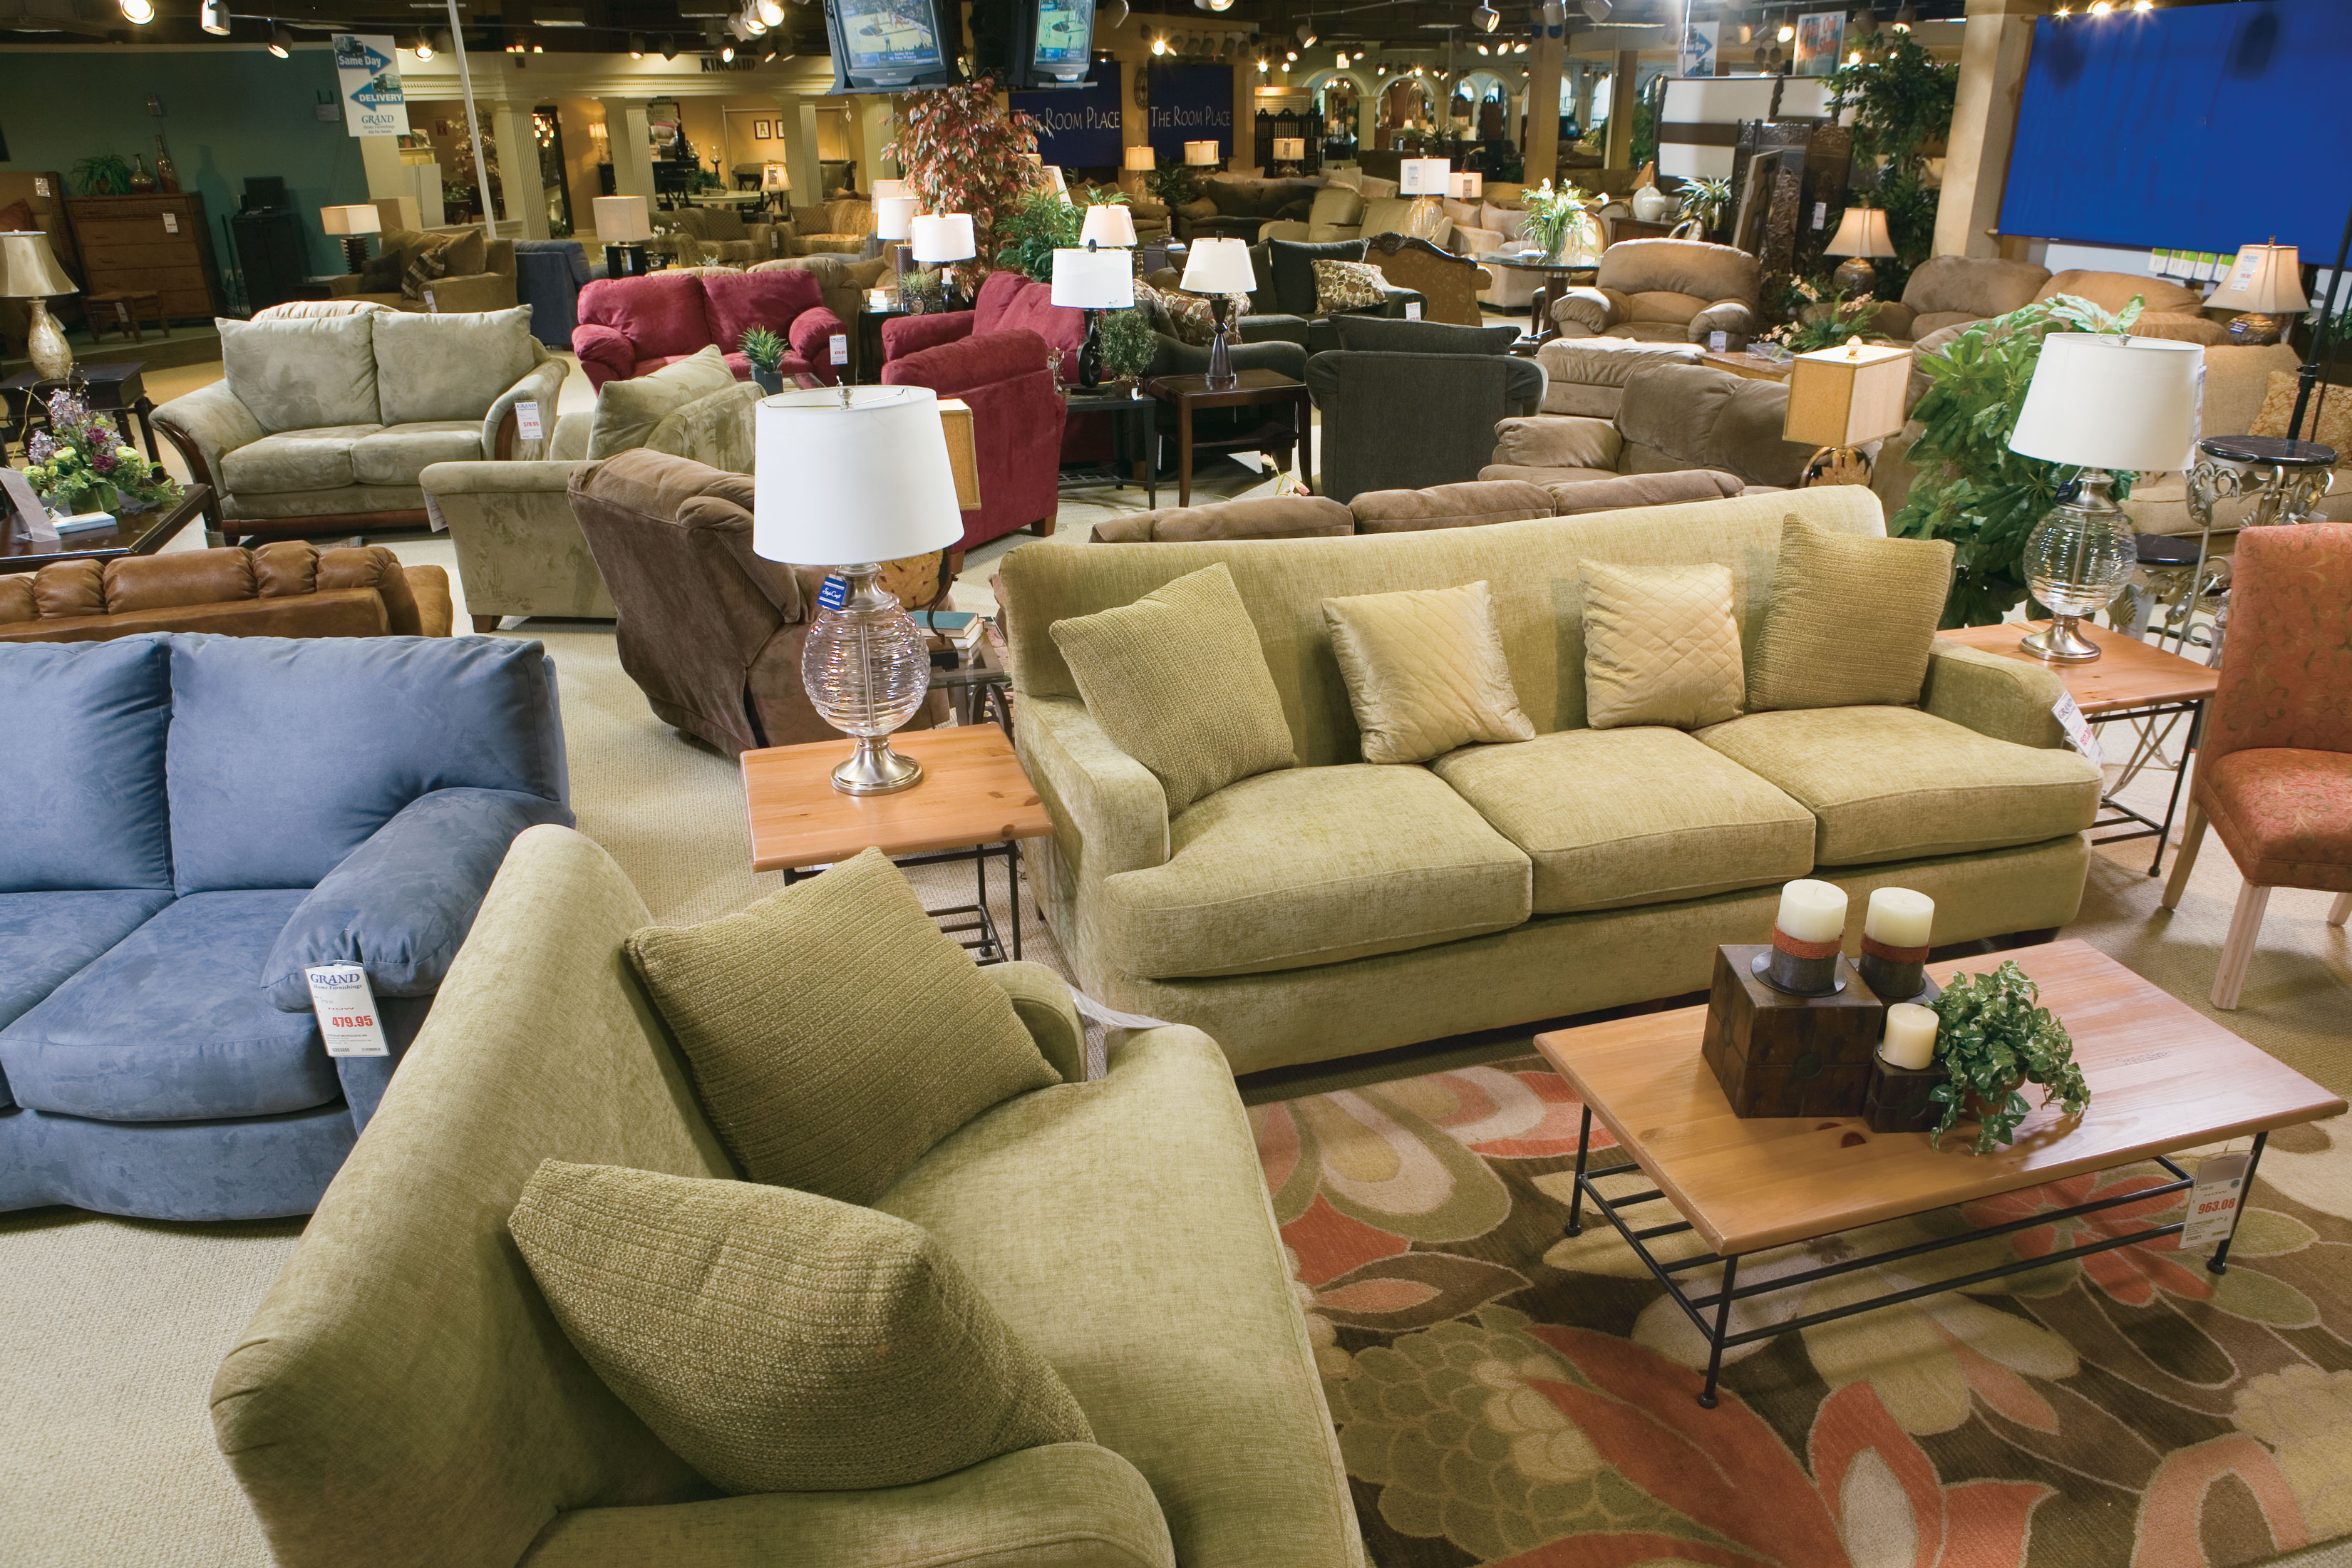 Grand Home Furnishings-Superstore, Summersville WV